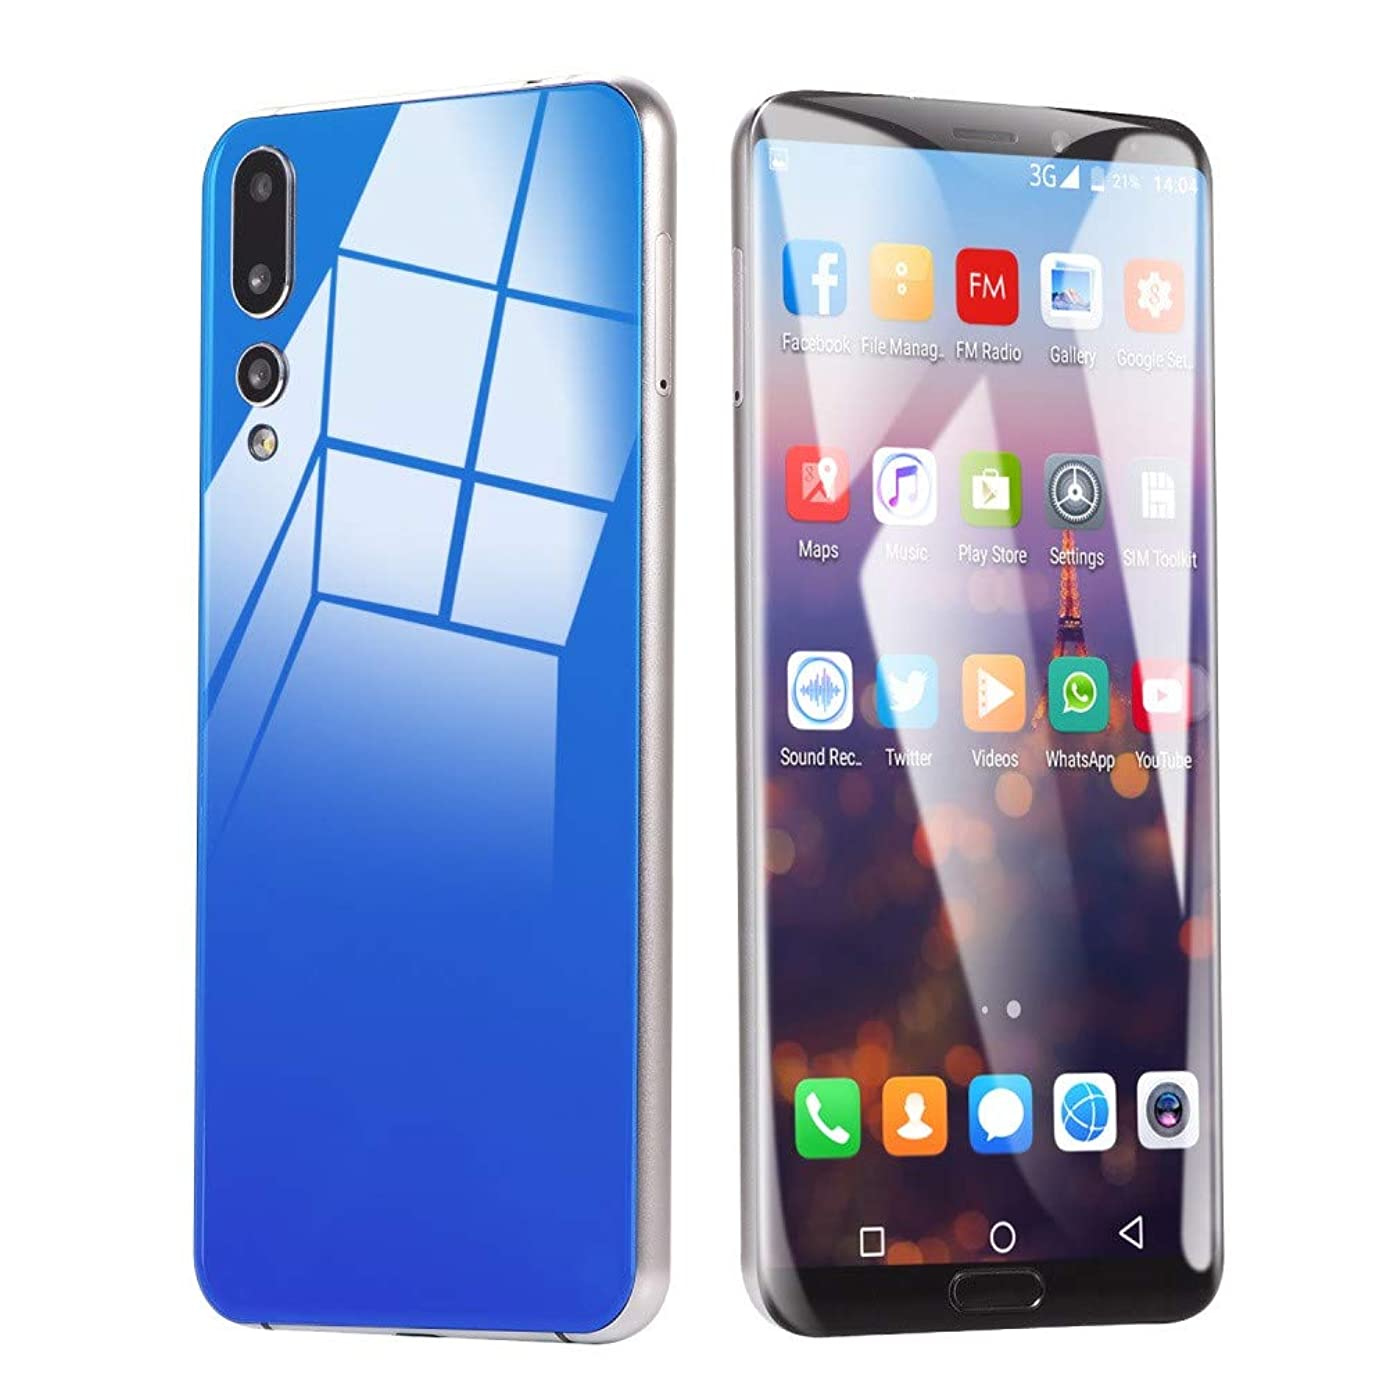 Smartphone Unlocked Cell Phones Eight Cores 6.1 inch Dual HD Camera Unlocked Android 8GB Dual SIM Mobile Phone